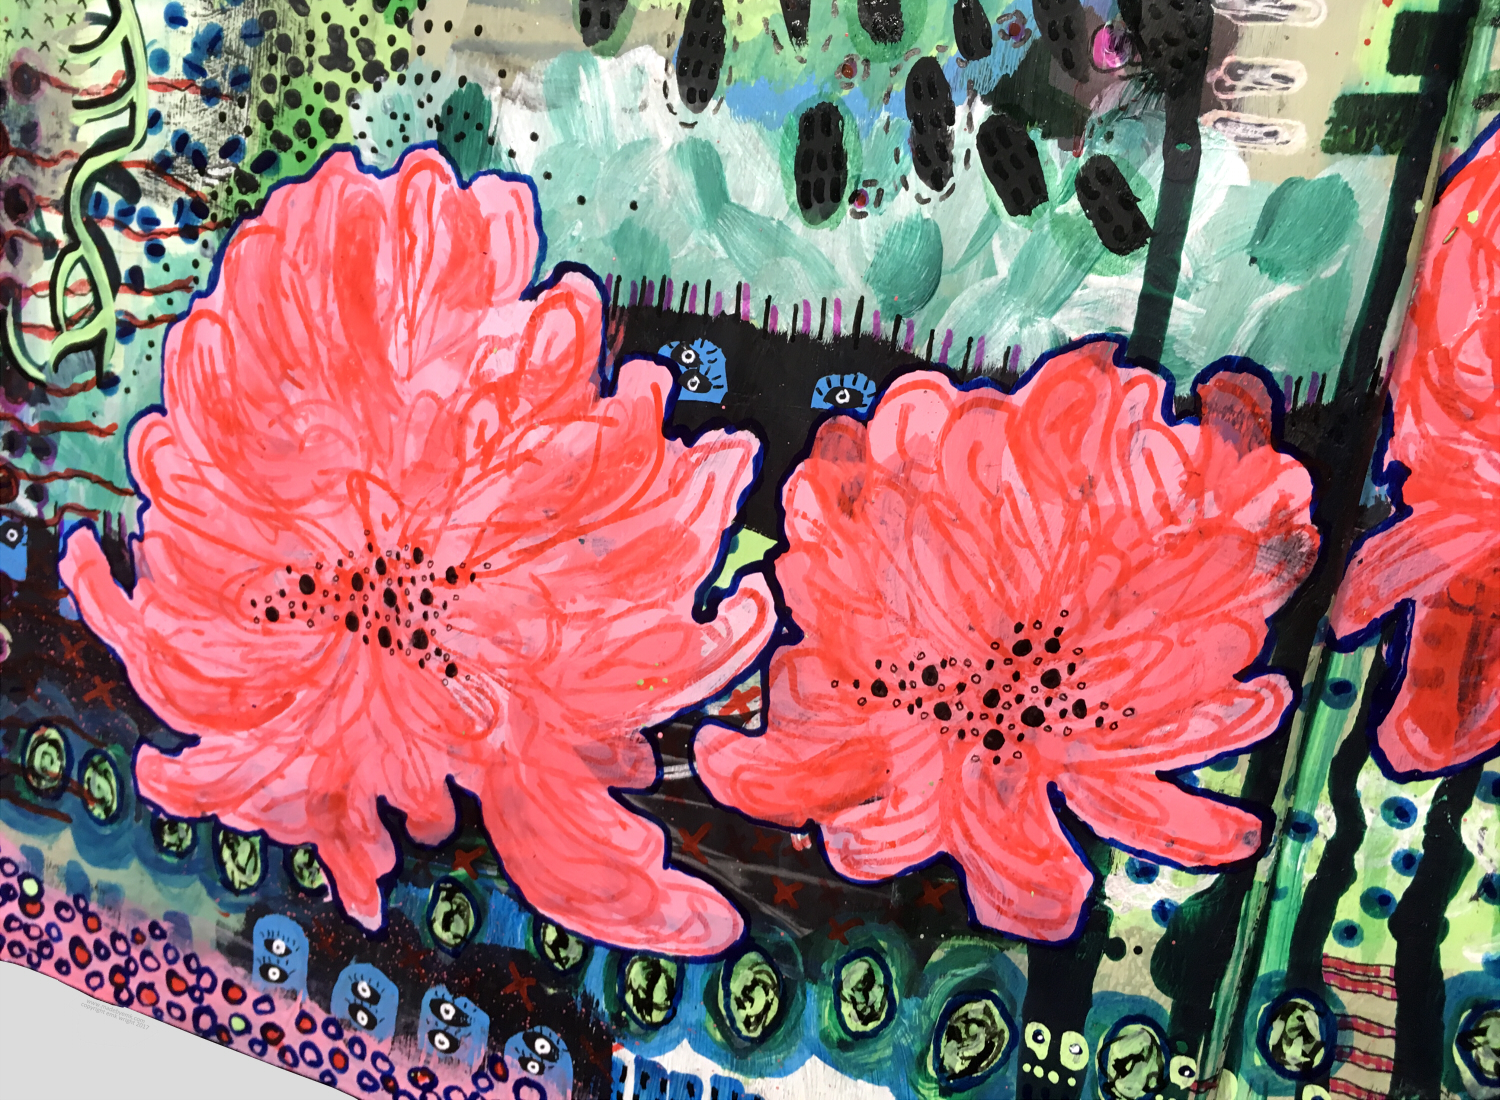 close-up-floral-of-overgrown-art-journal-page-mixed-media-copyright-emk-wright-2017.jpg